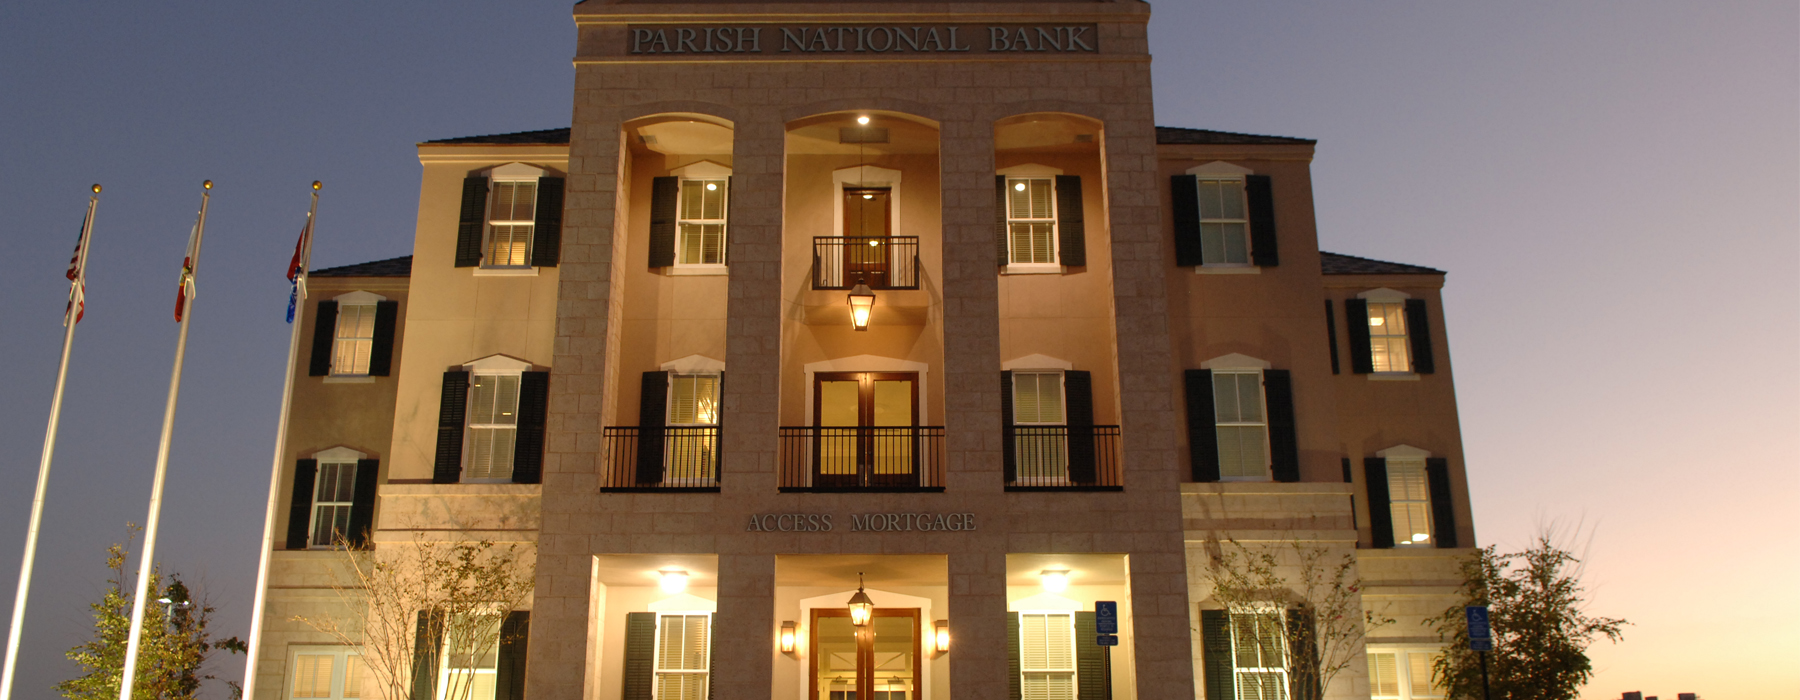 Parish National Bank